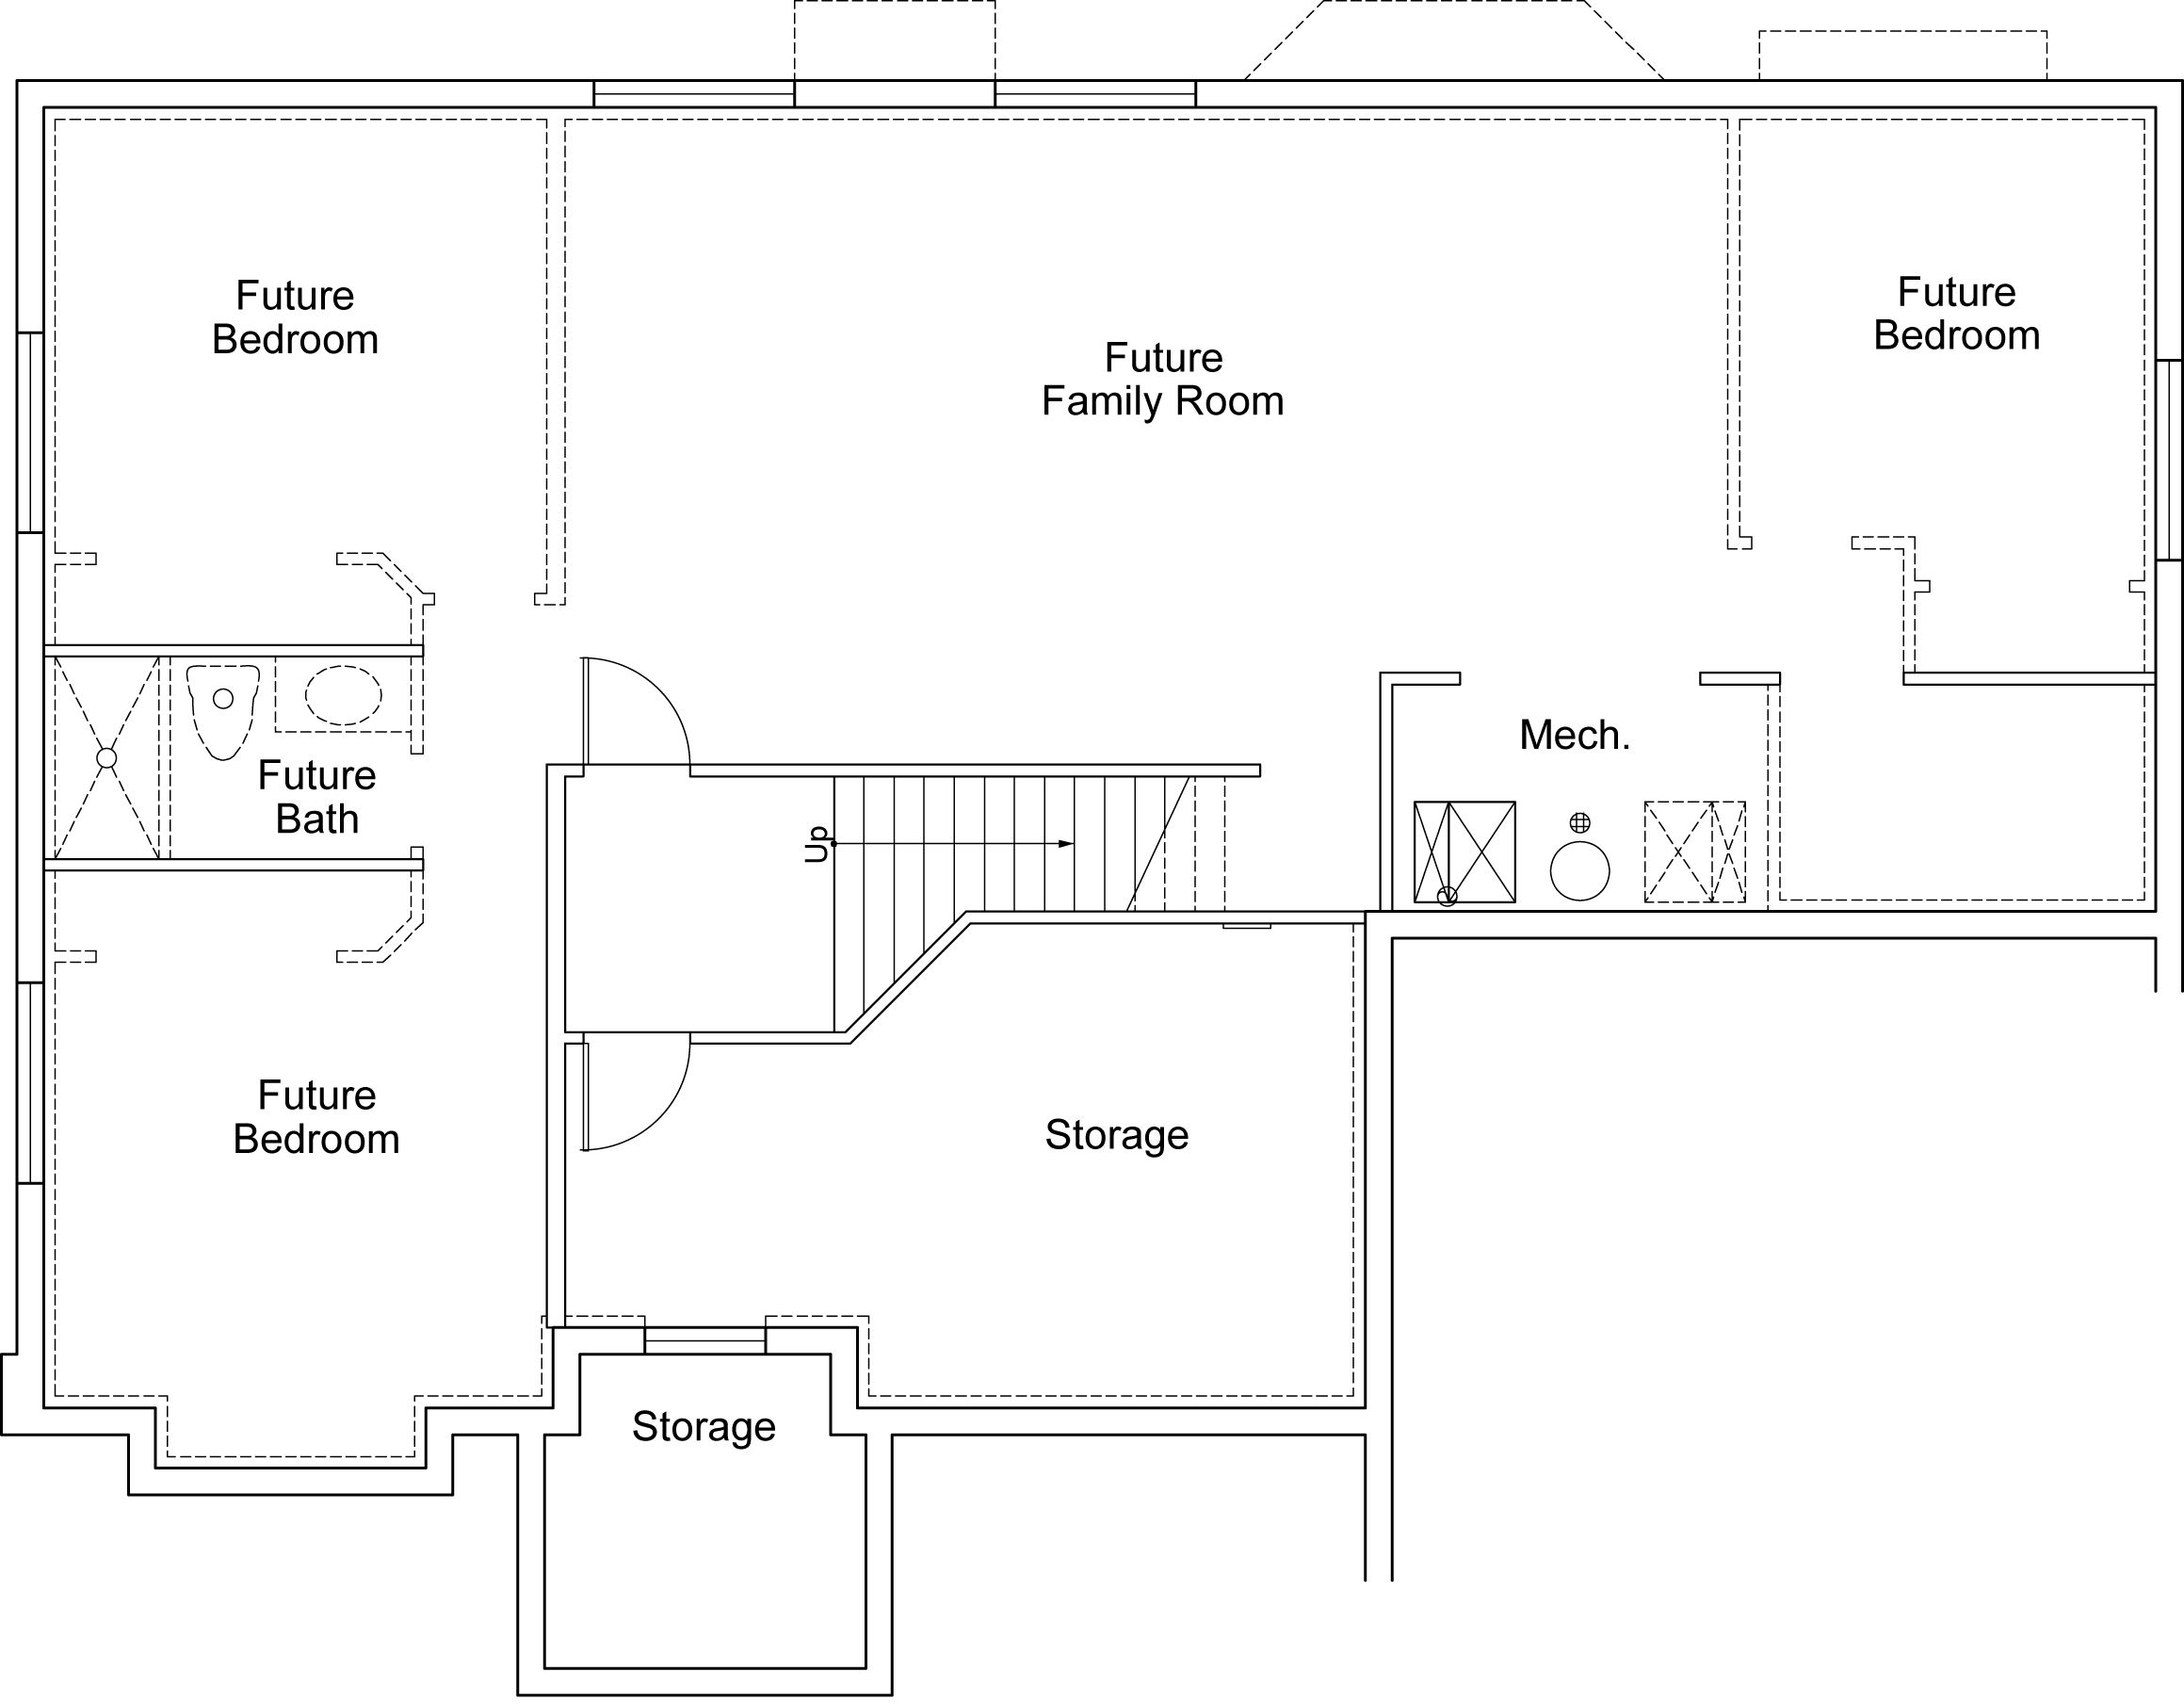 Hamilton Rustic Ivory Homes Floor Plan Basement Level – Ivory Homes Hamilton Floor Plan